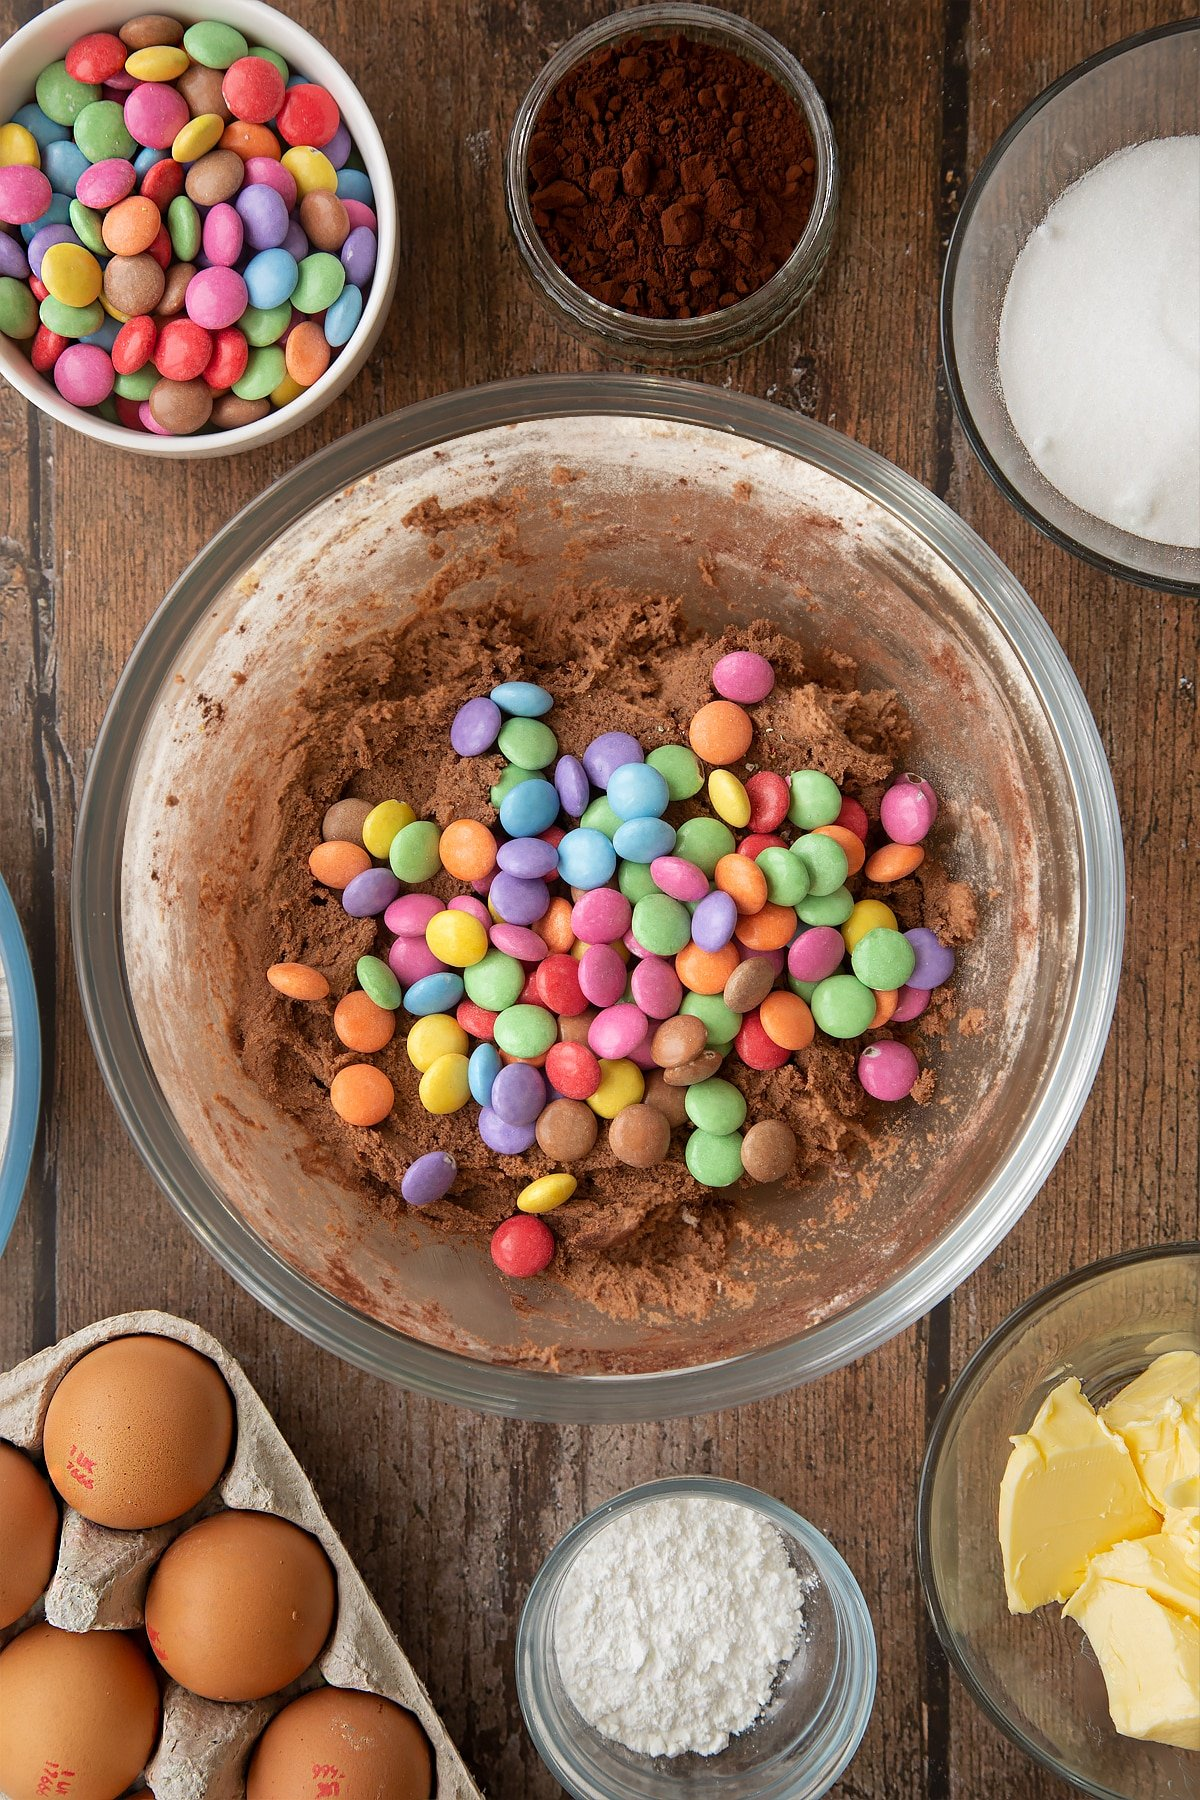 Chocolate cookie dough in a glass mixing bowl, topped with Smarties. Ingredients to make the Smartie cookie recipe surround the bowl.